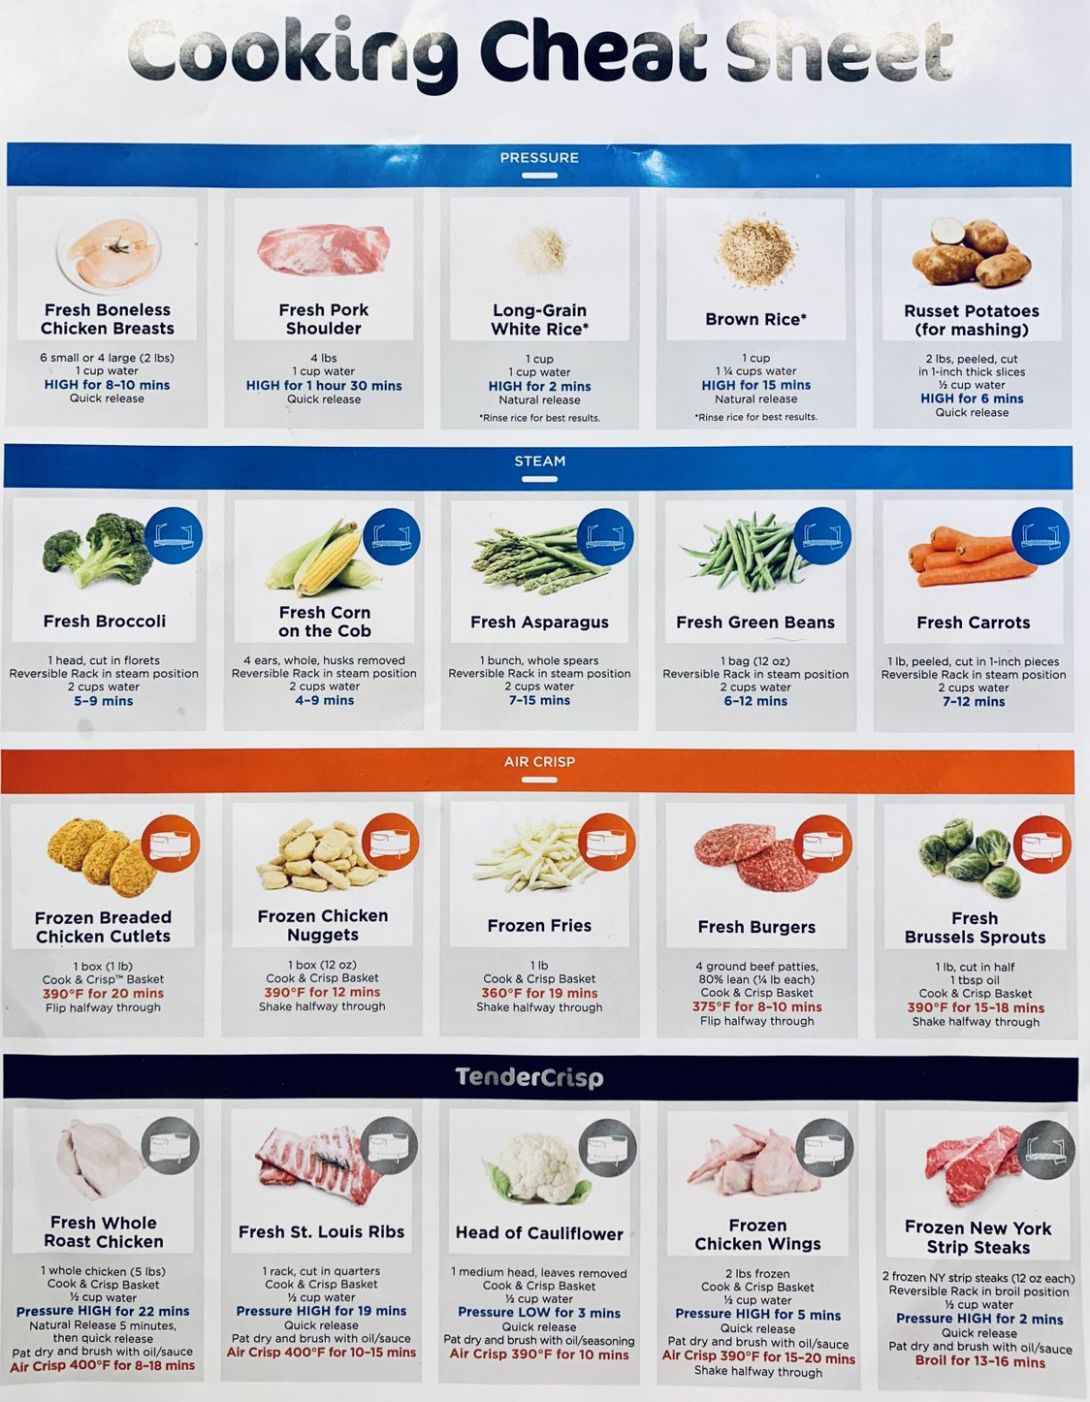 Ninja Foodie Cooking Cheat Sheet | Ninja cooking system recipes ...